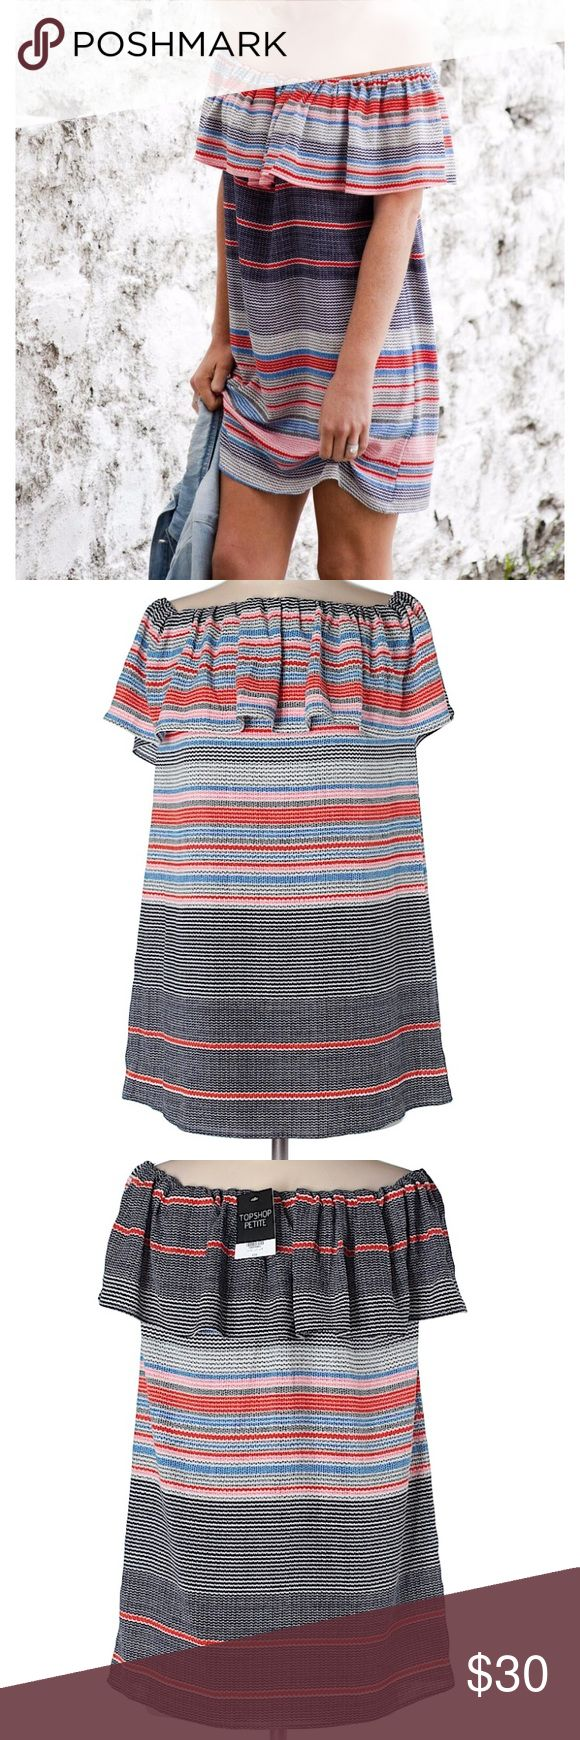 TOPSHOP petite striped bardot dress Bare shoulders and stripes make the perfect duo in this bardot dress. A woven block colour style with elasticated frill cold shoulders for a flattering fit. Style it with flat sandals for day or night. 97% Polyester, 3% Elastane. Machine wash. Multi color. SOLD OUT Topshop Dresses